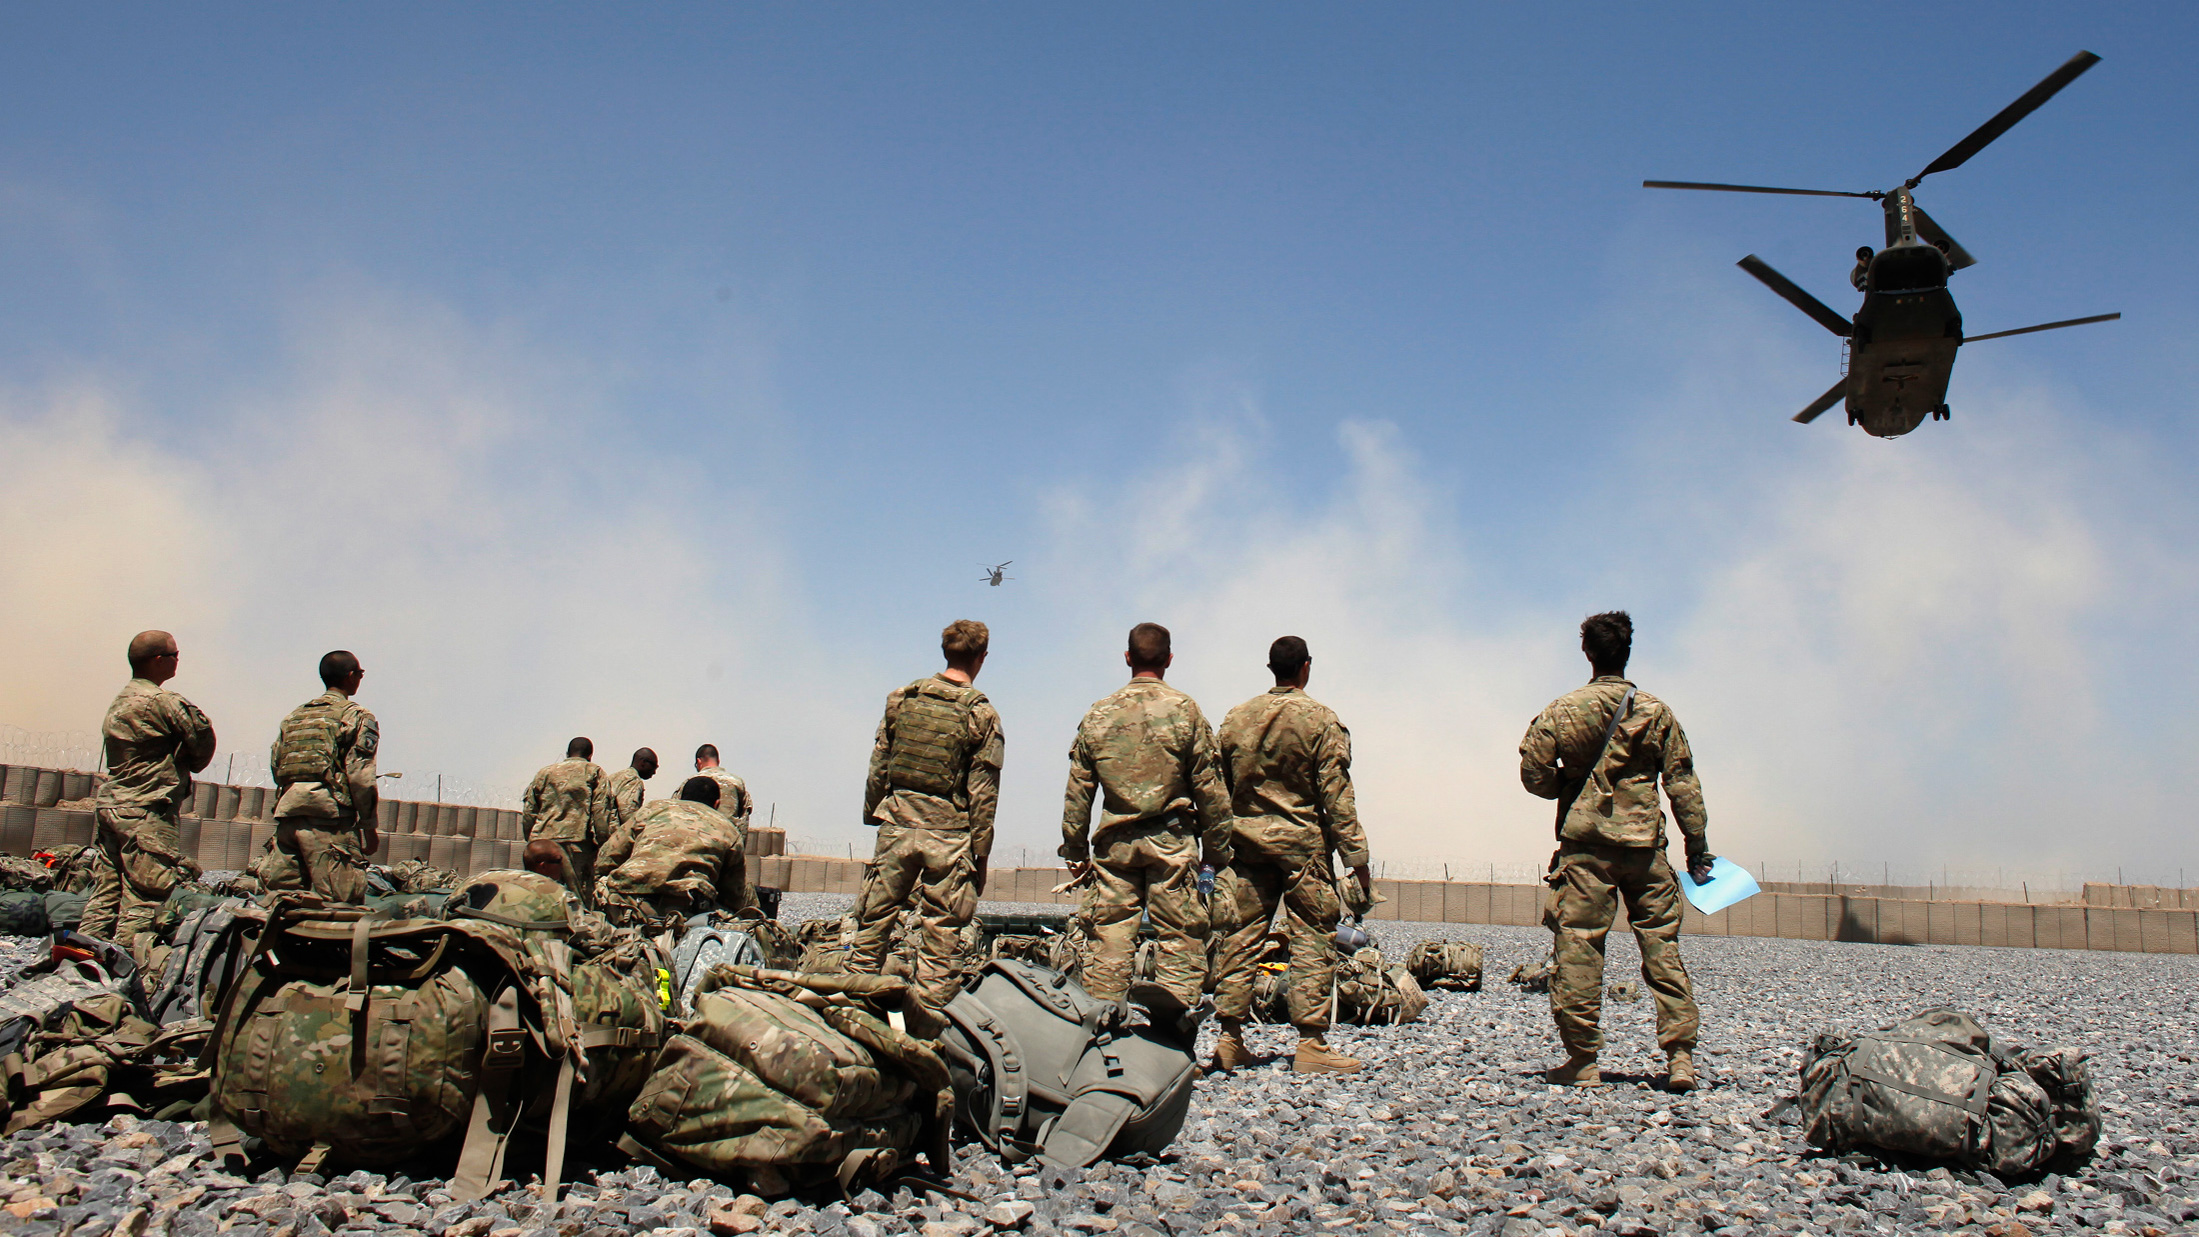 Helicopters carrying U.S. Army soldiers from the 1-320 Field Artillery Regiment, 101st Airborne Division, take off from Combat Outpost Terra Nova as the soldiers head home following a 10-month deployment in the Arghandab Valley north of Kandahar April 23, 2011.  REUTERS/Bob Strong  (AFGHANISTAN - Tags: MILITARY POLITICS IMAGES OF THE DAY)